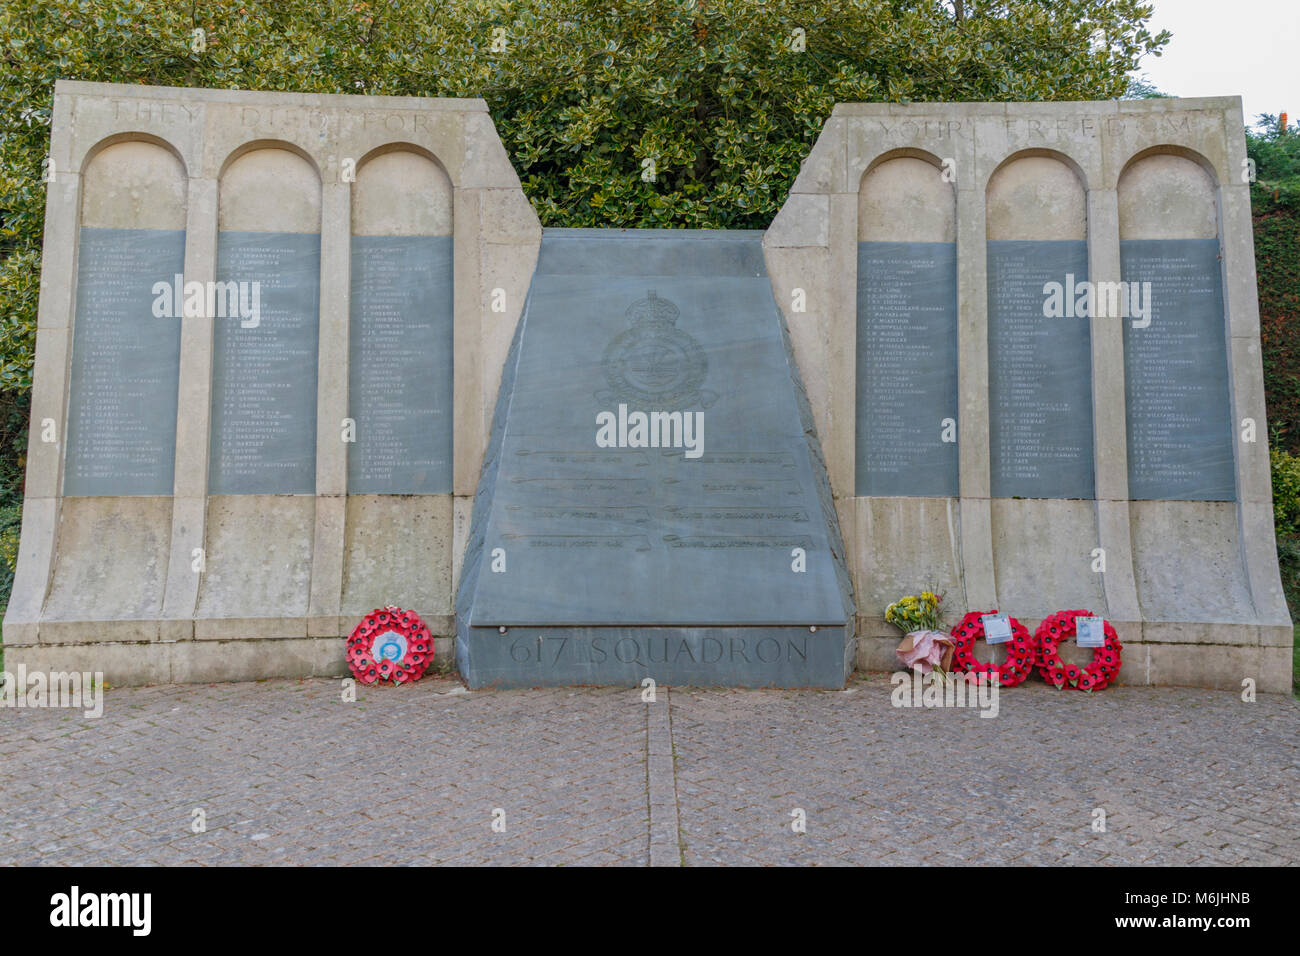 Stone and slate memorial to the crew of 617 Squadron Royal air Force (The Dam BUsters) RAF. Woodhall Spa Linconshire - Stock Image